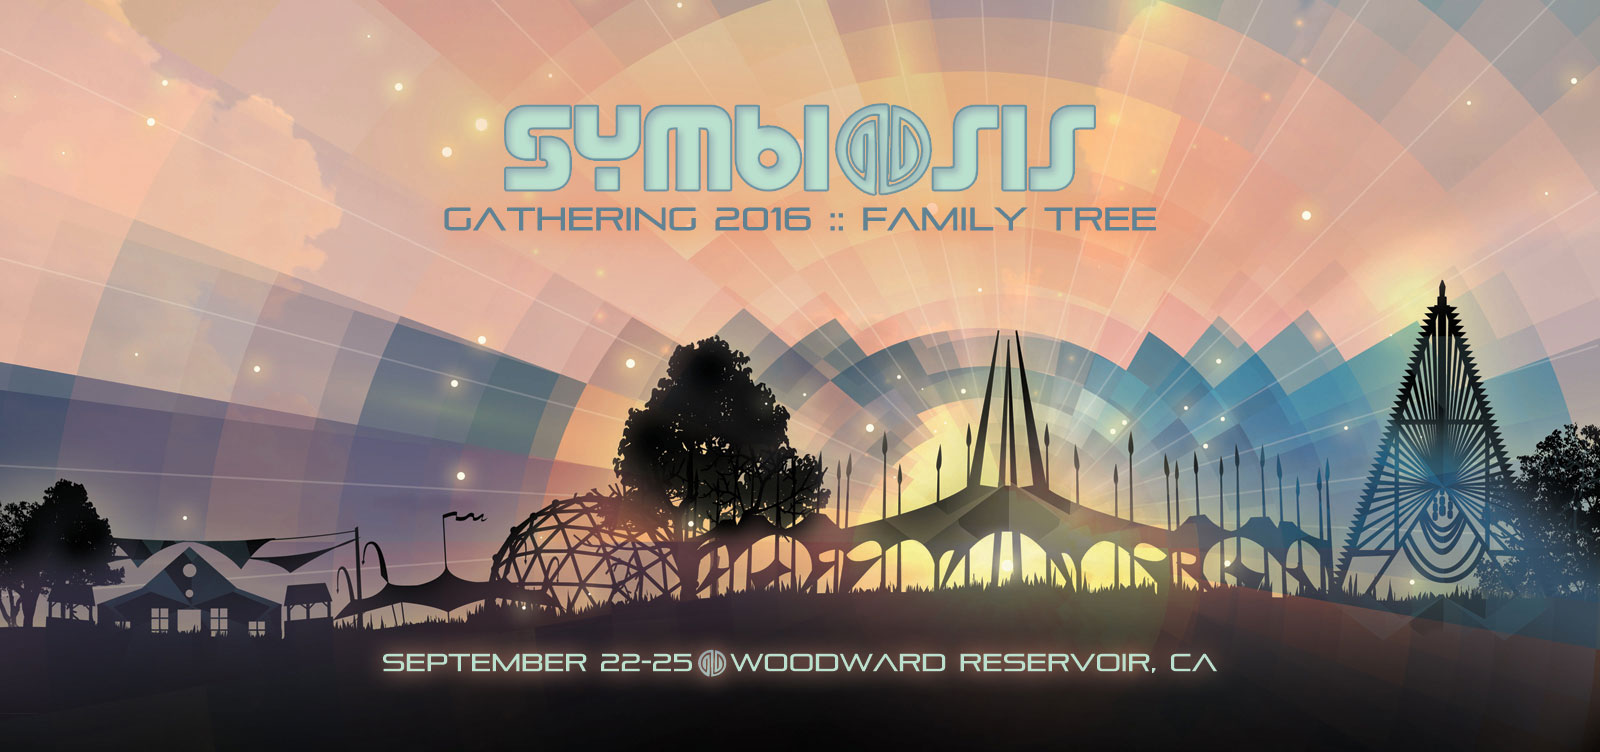 Symbiosis Gathering 2016: Family Tree: September 22-25, Woodward Reservoir, CA